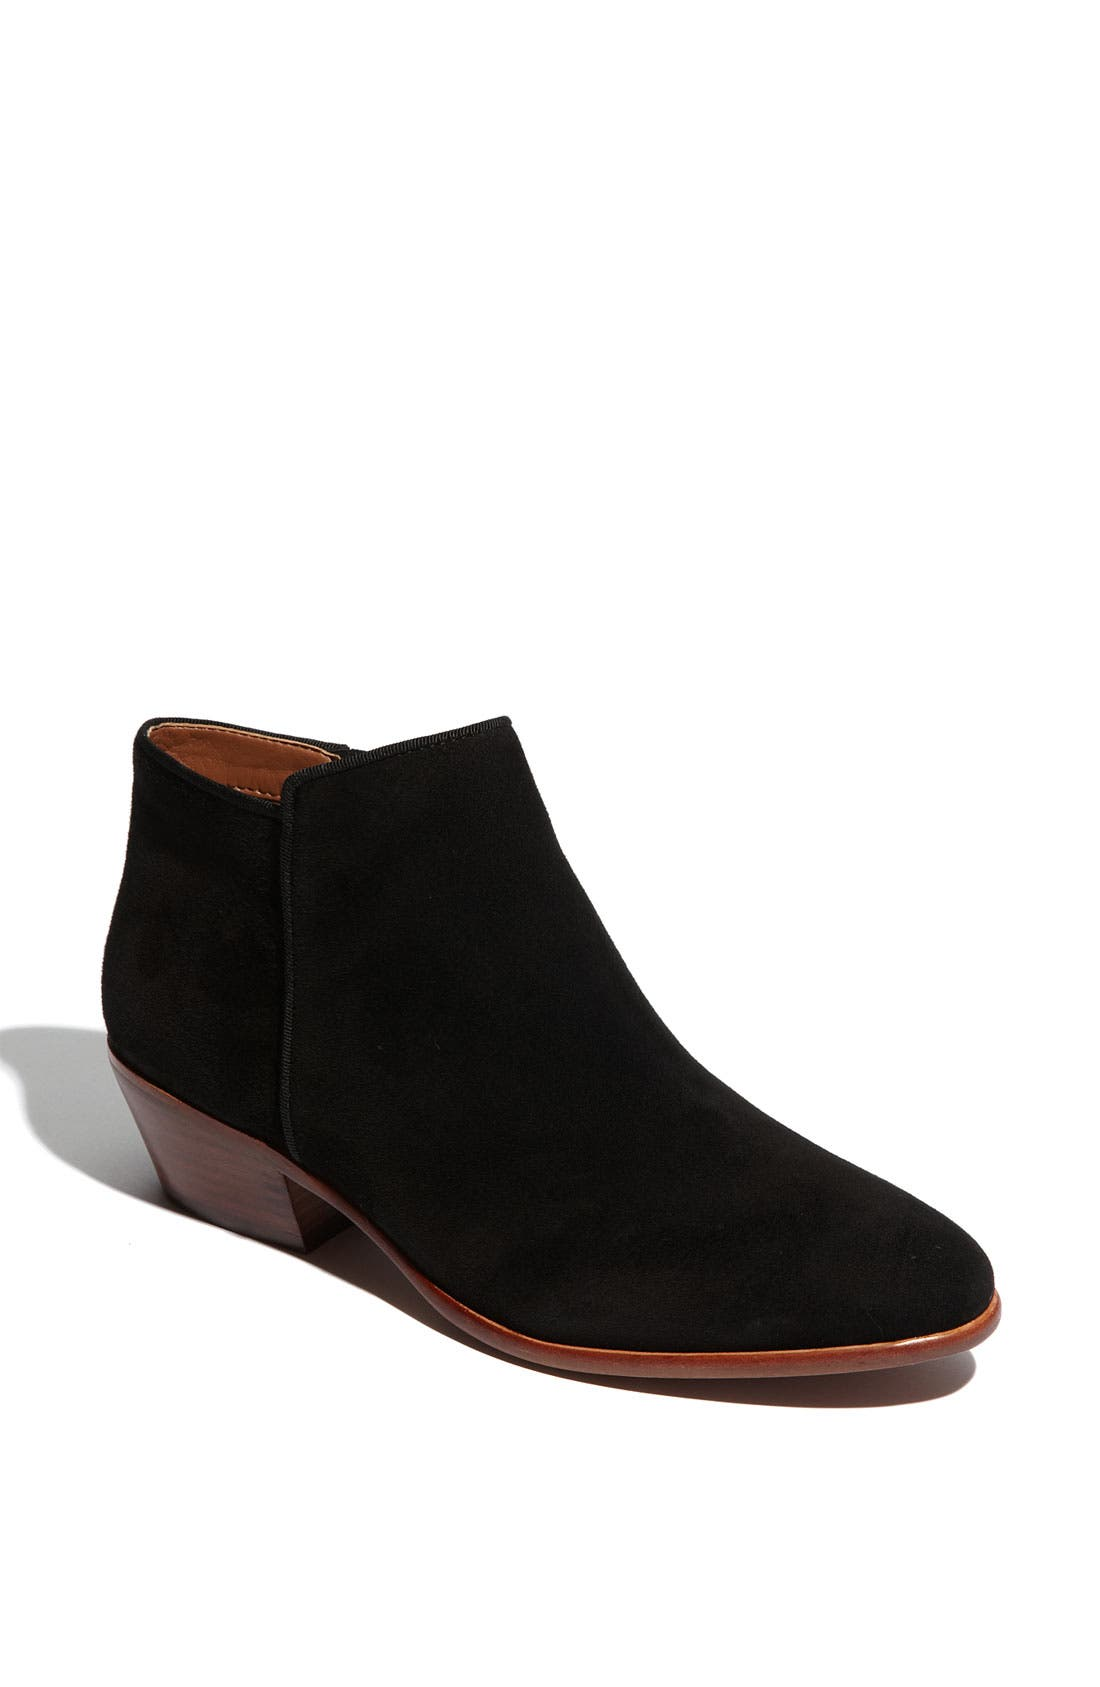 'Petty' Chelsea Boot,                             Main thumbnail 1, color,                             BLACK SUEDE